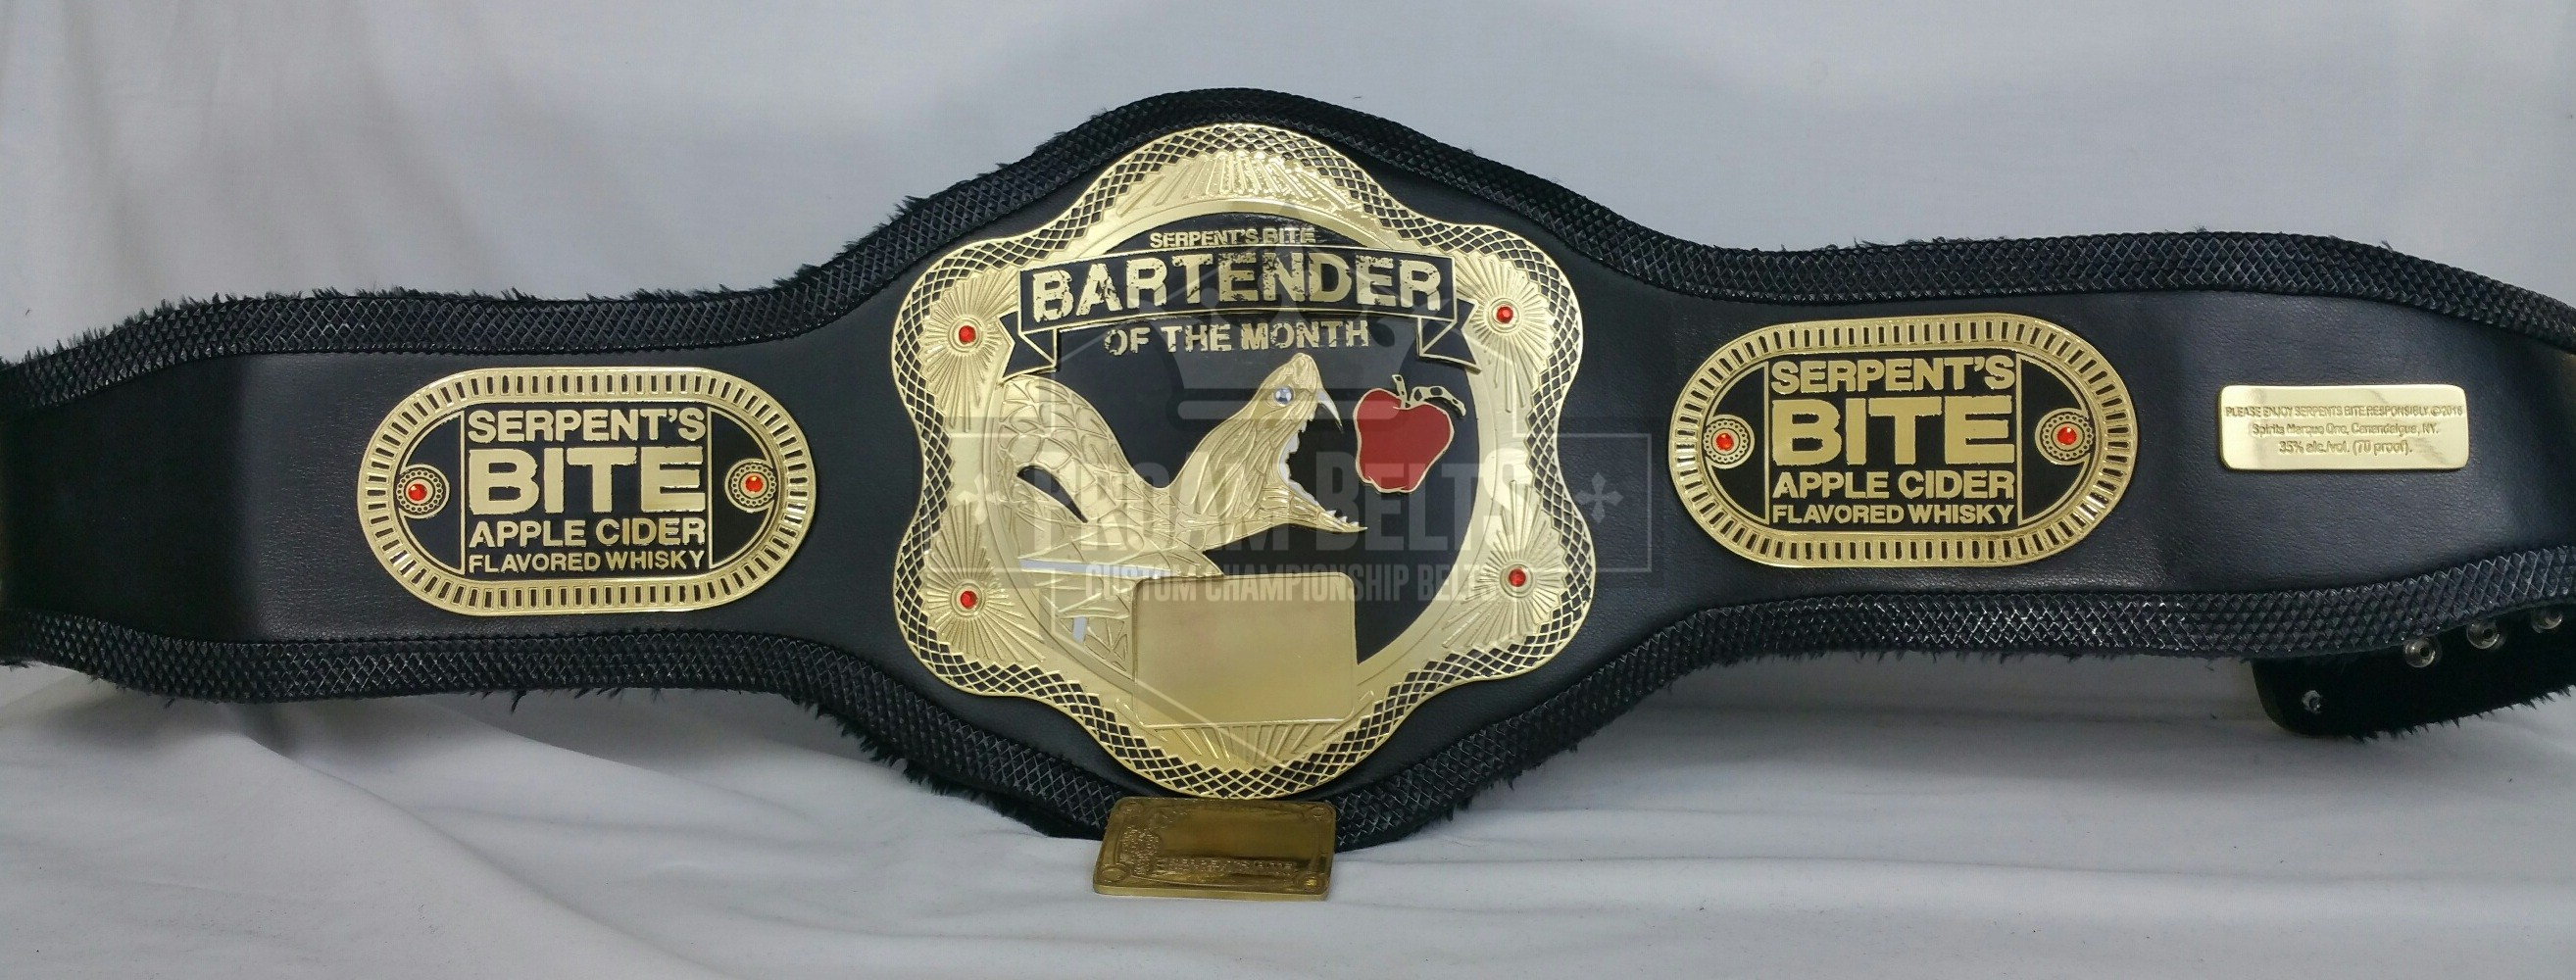 Another Wicked Design from the ProAmBelts Team